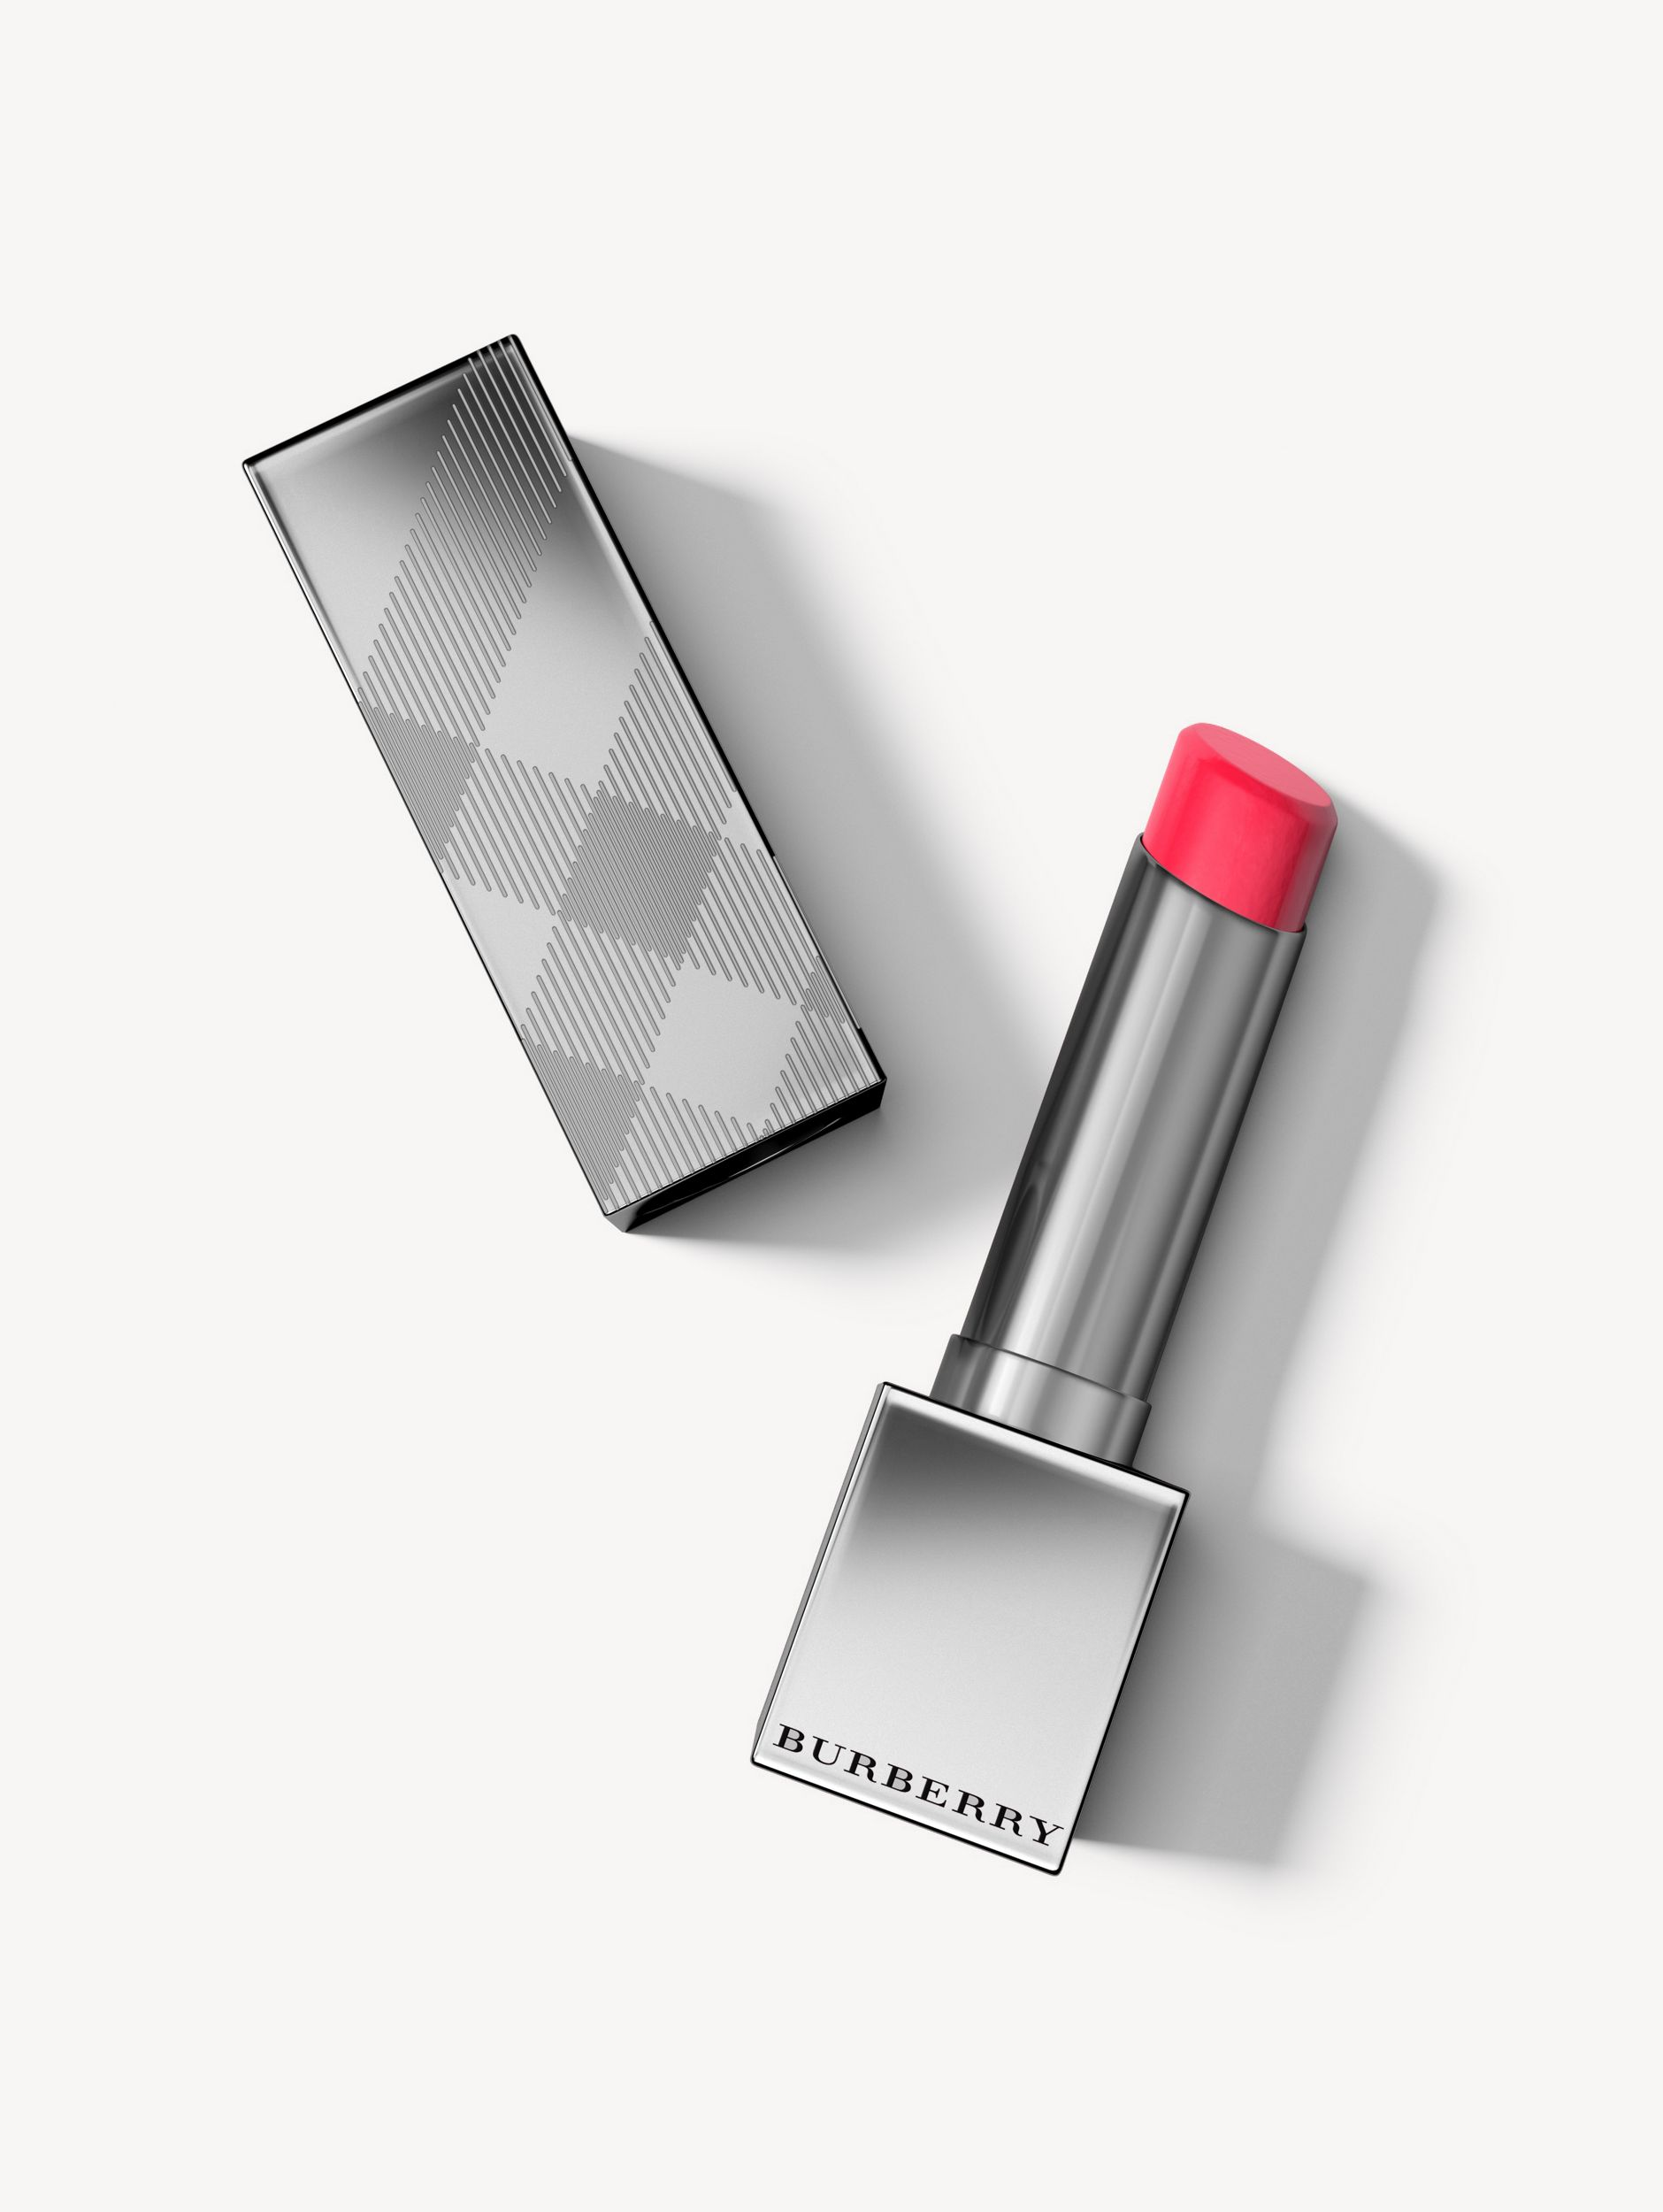 Burberry Kisses Sheer – Crimson Pink No.241 - Women | Burberry United Kingdom - 1